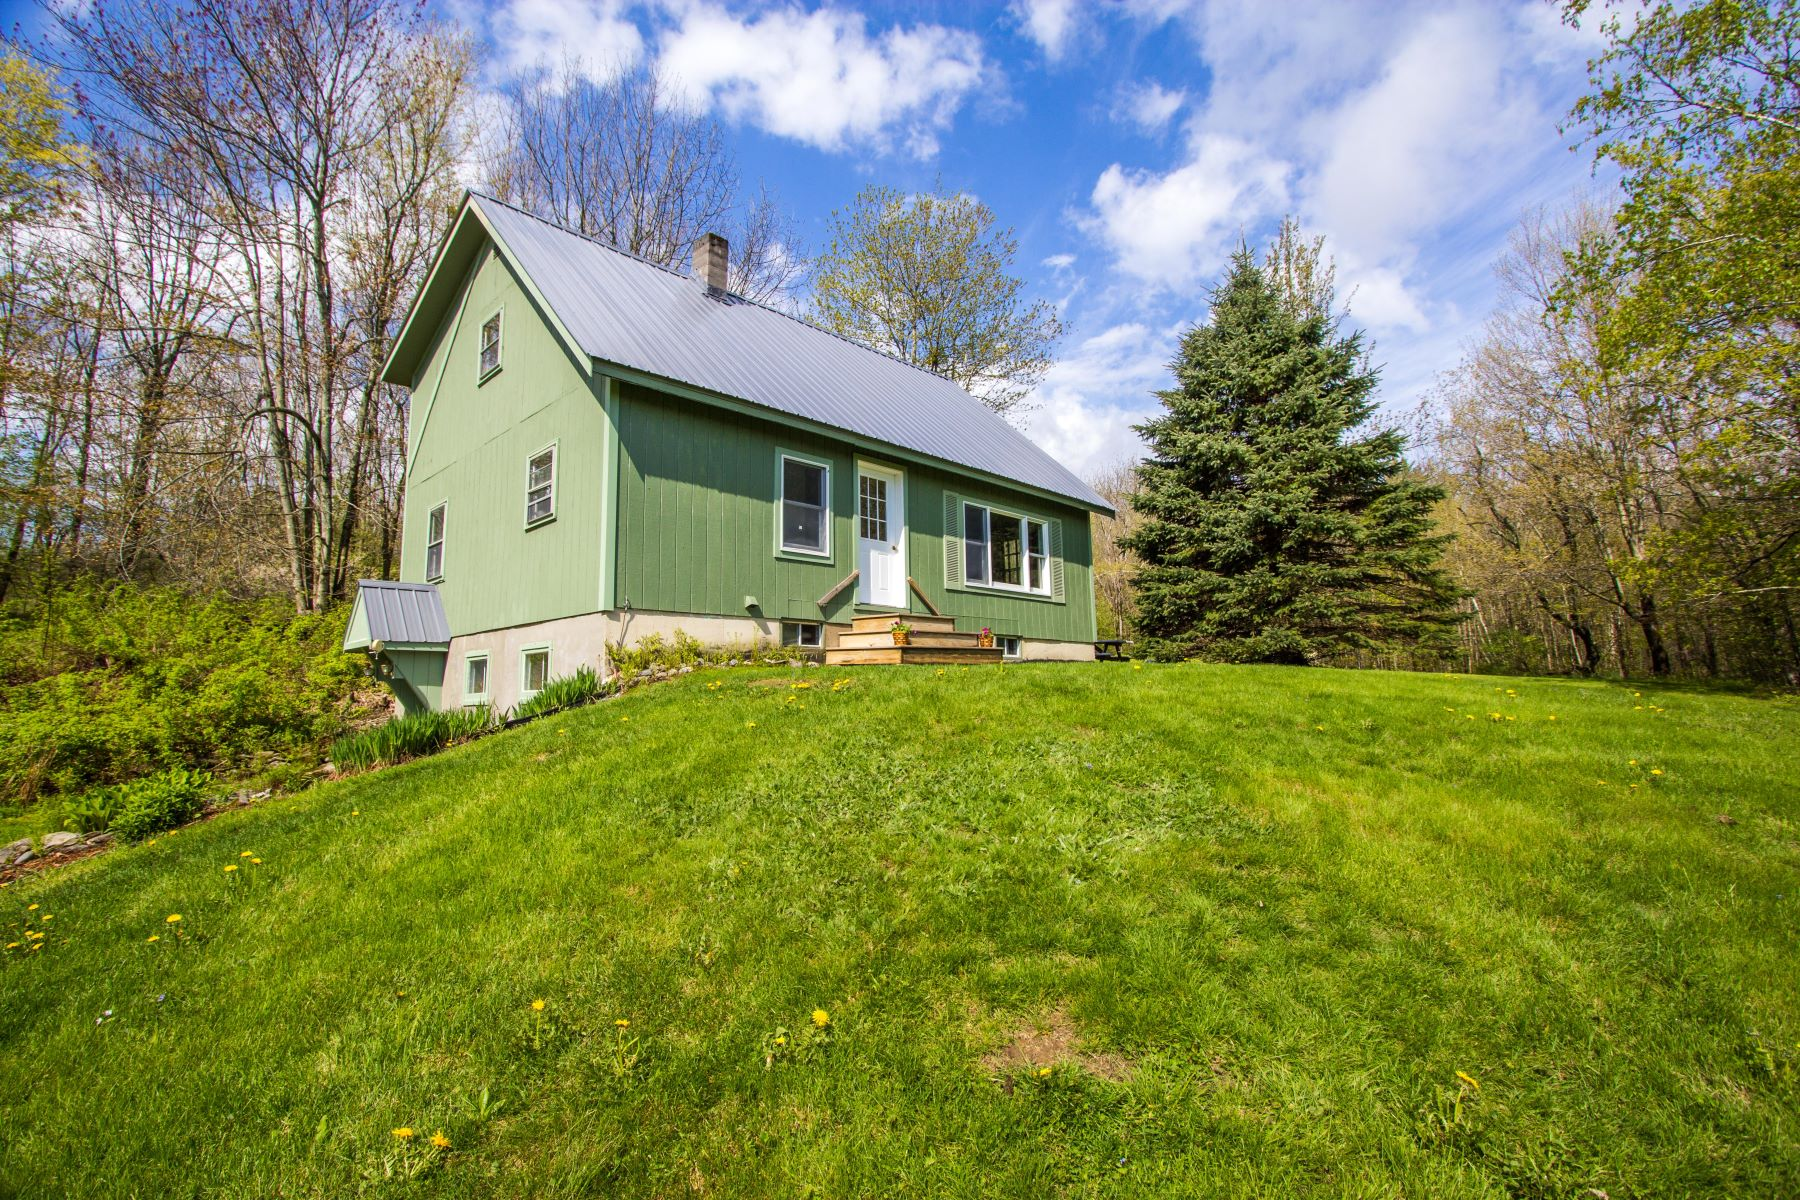 single family homes for Sale at 317 Poker Hill Road, Underhill 317 Poker Hill Rd Underhill, Vermont 05489 United States